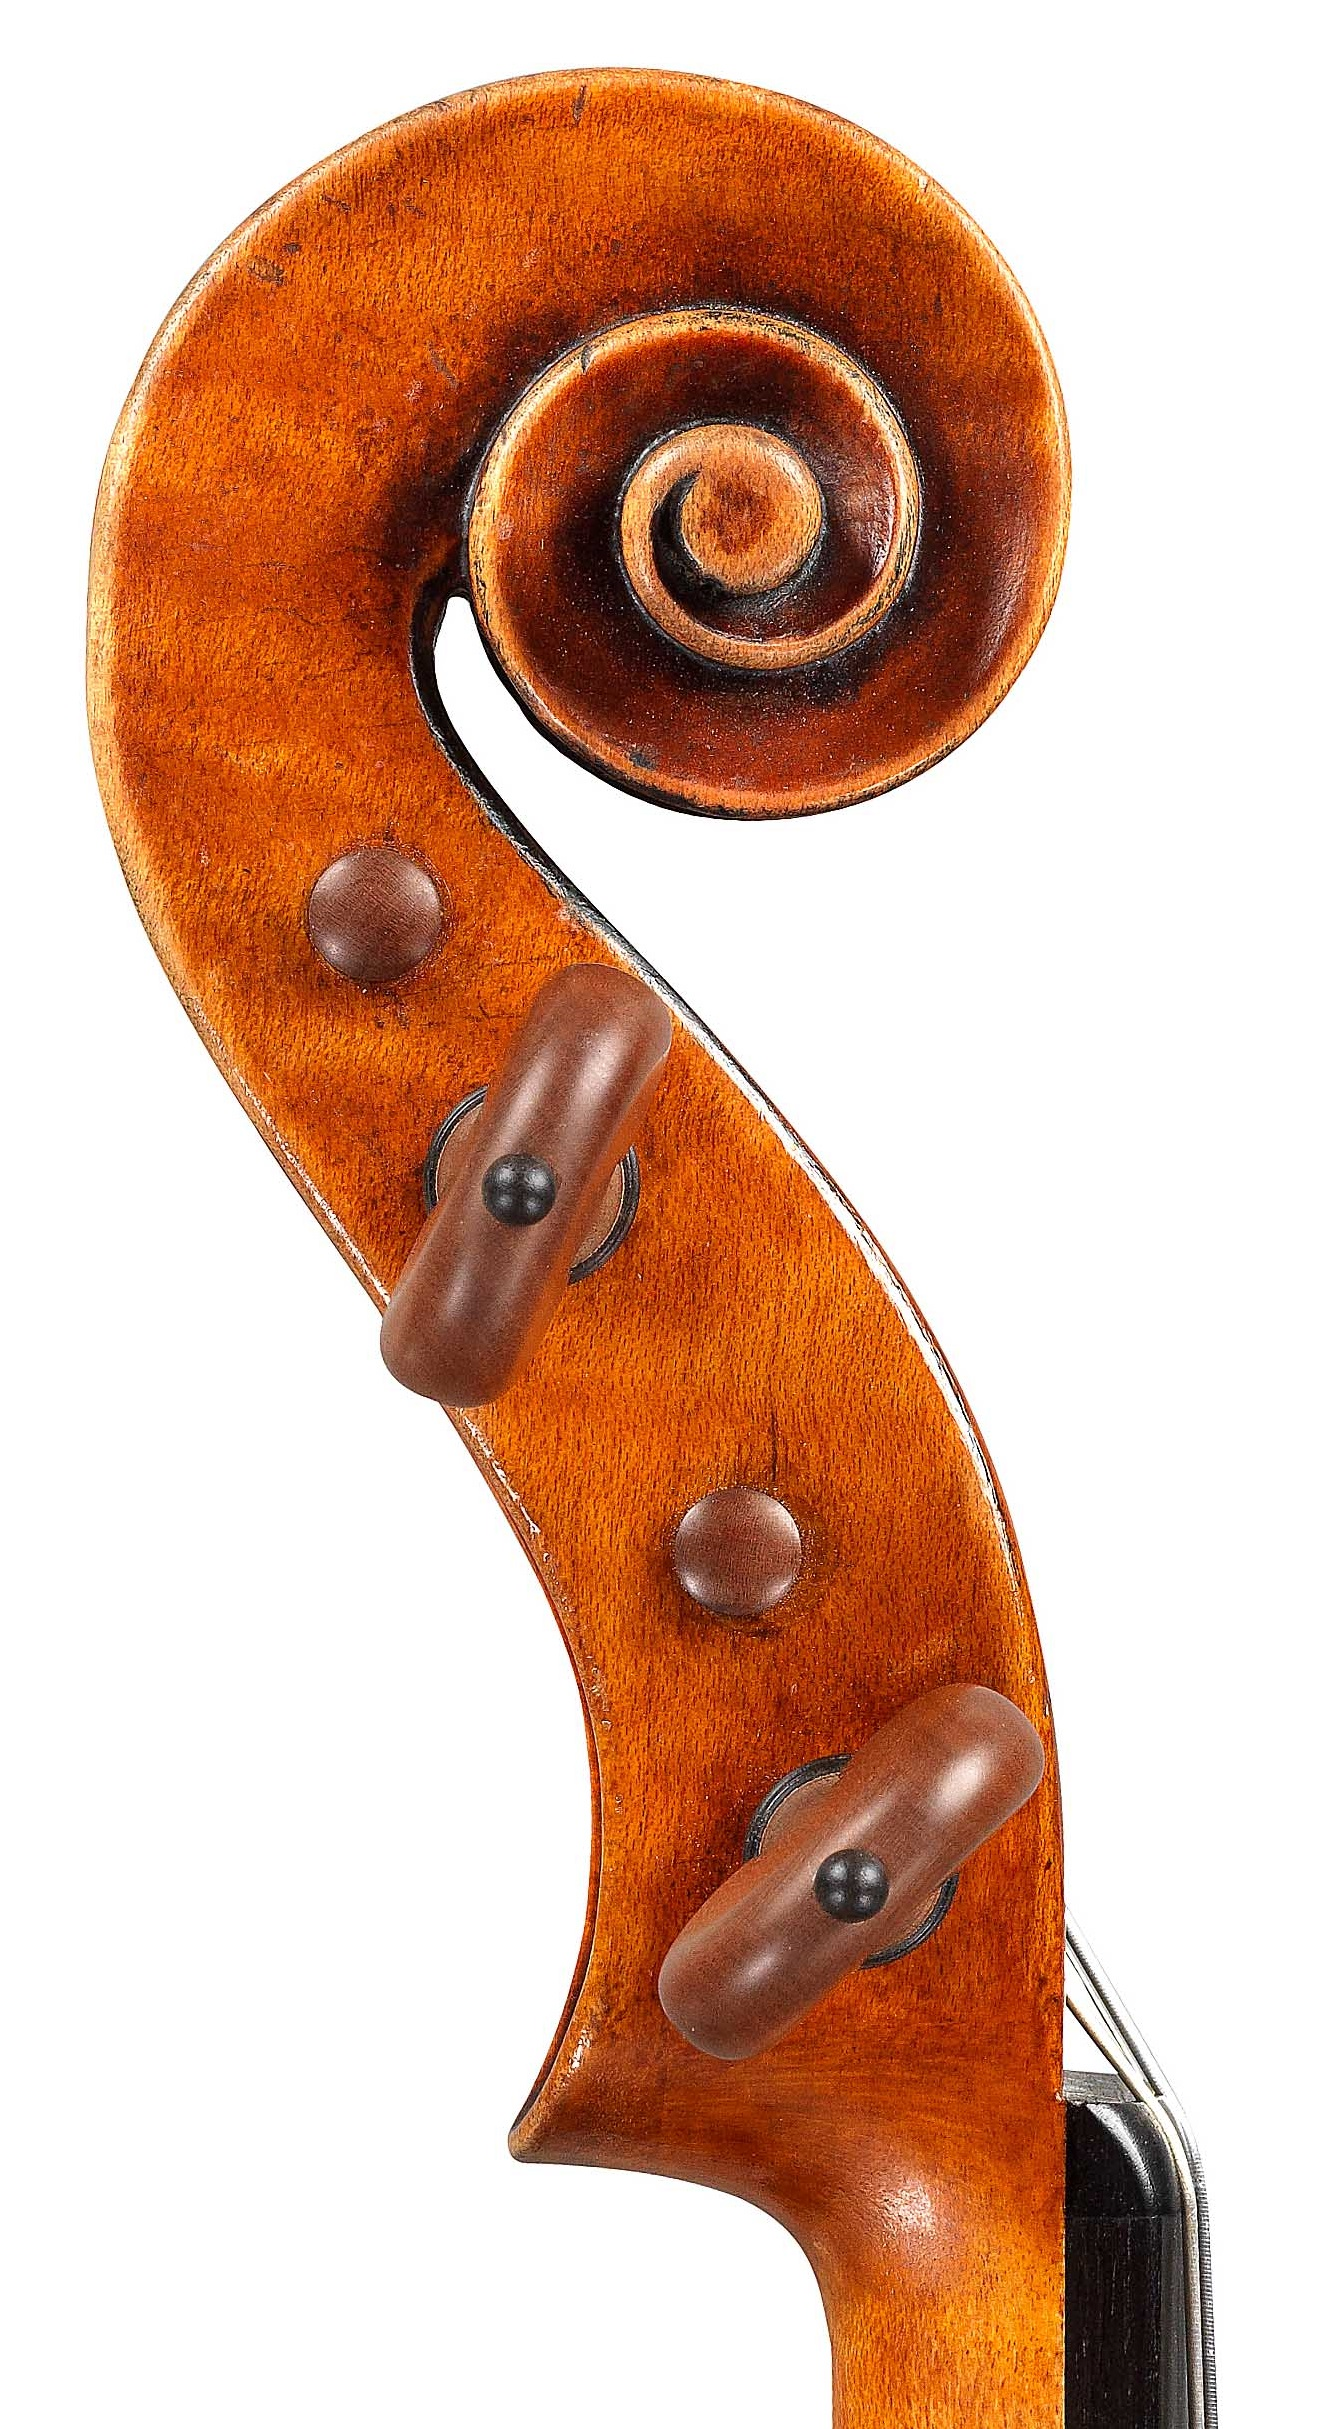 Scroll of violin by JB Vuillaume, ex-Sin, dated 1865, exhibited by Ingles & Hayday at Sotheby's in 2012 and now played by Hilary Hahn